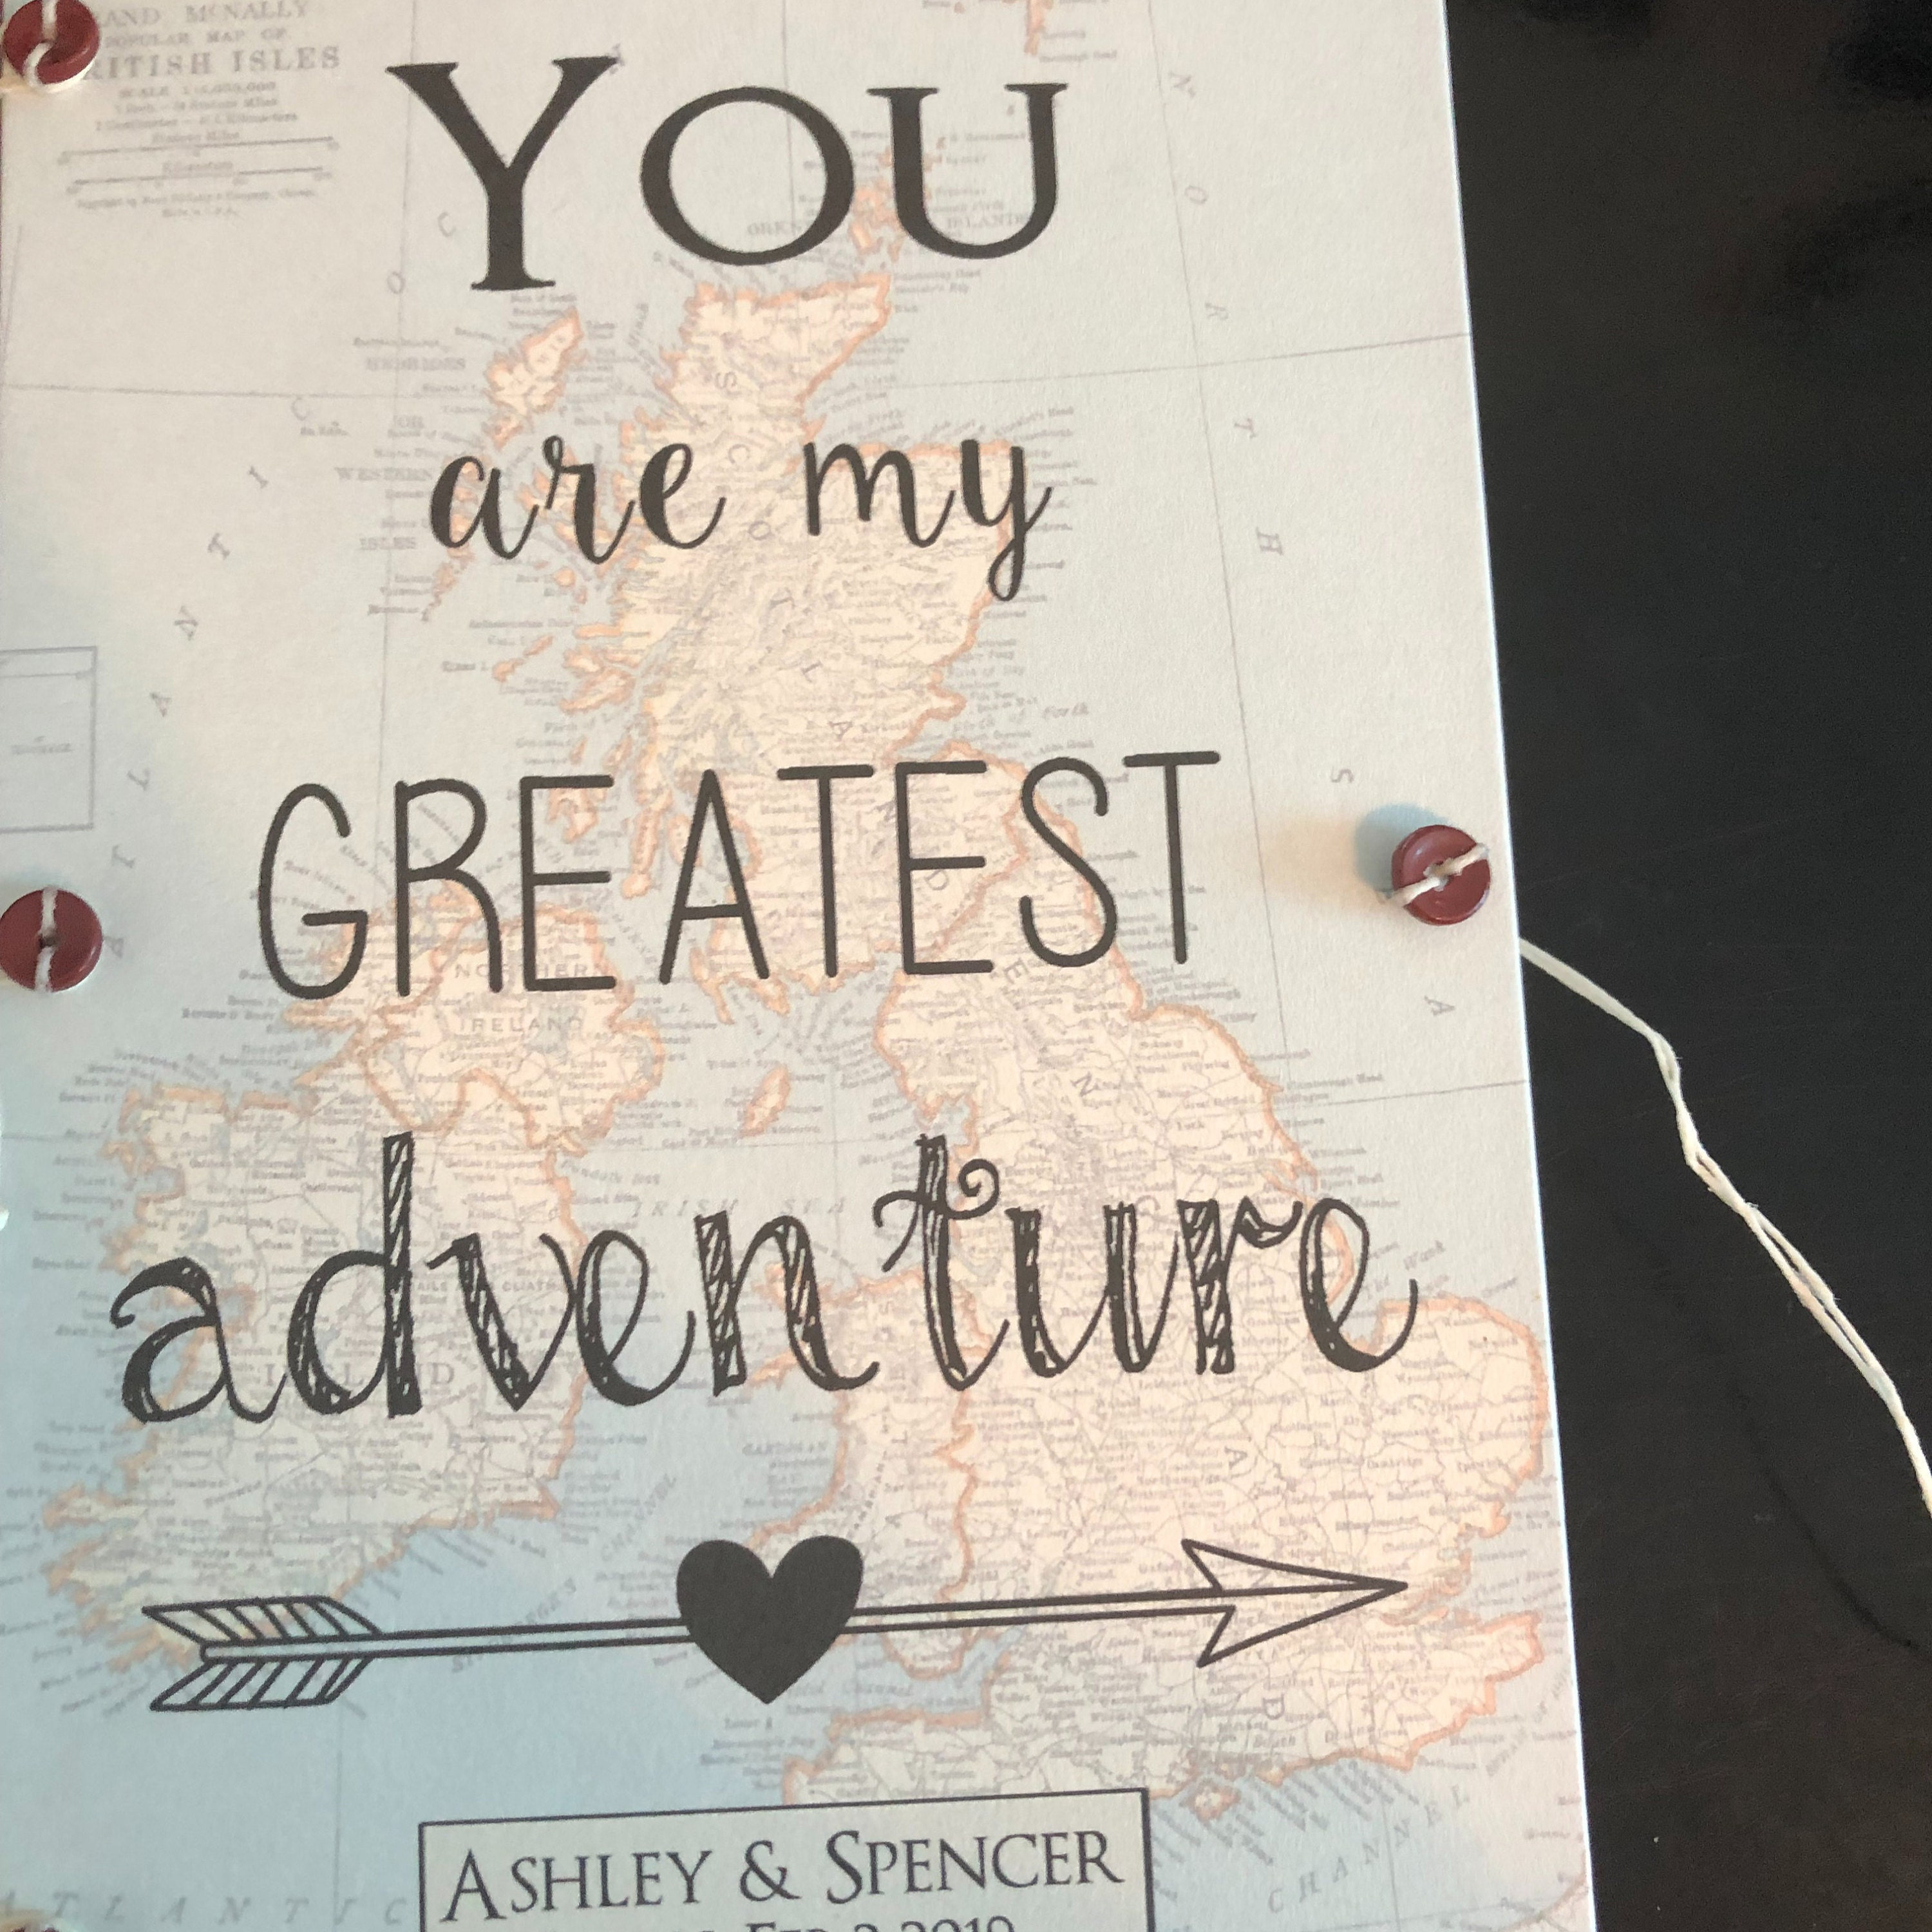 ashley dahring-rissler added a photo of their purchase